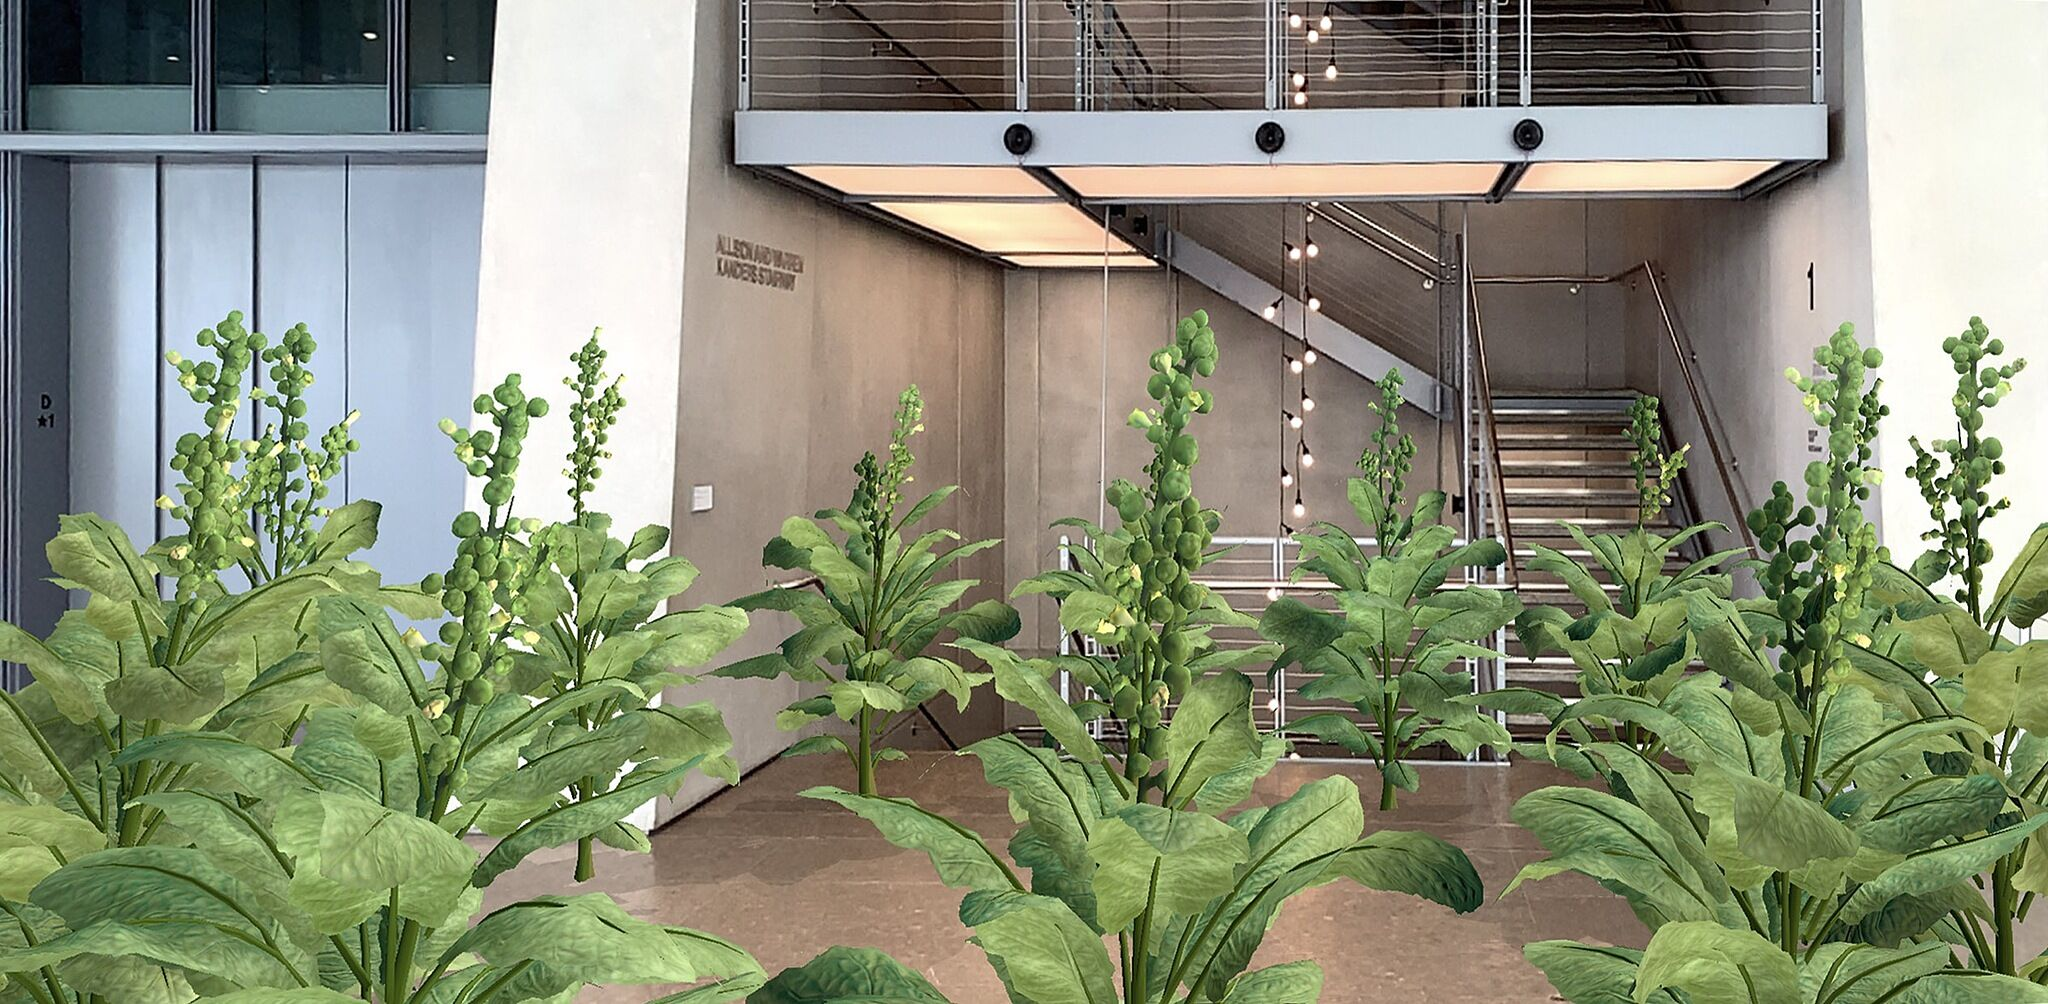 An image of the Whitney Museum lobby with augmented reality foliage